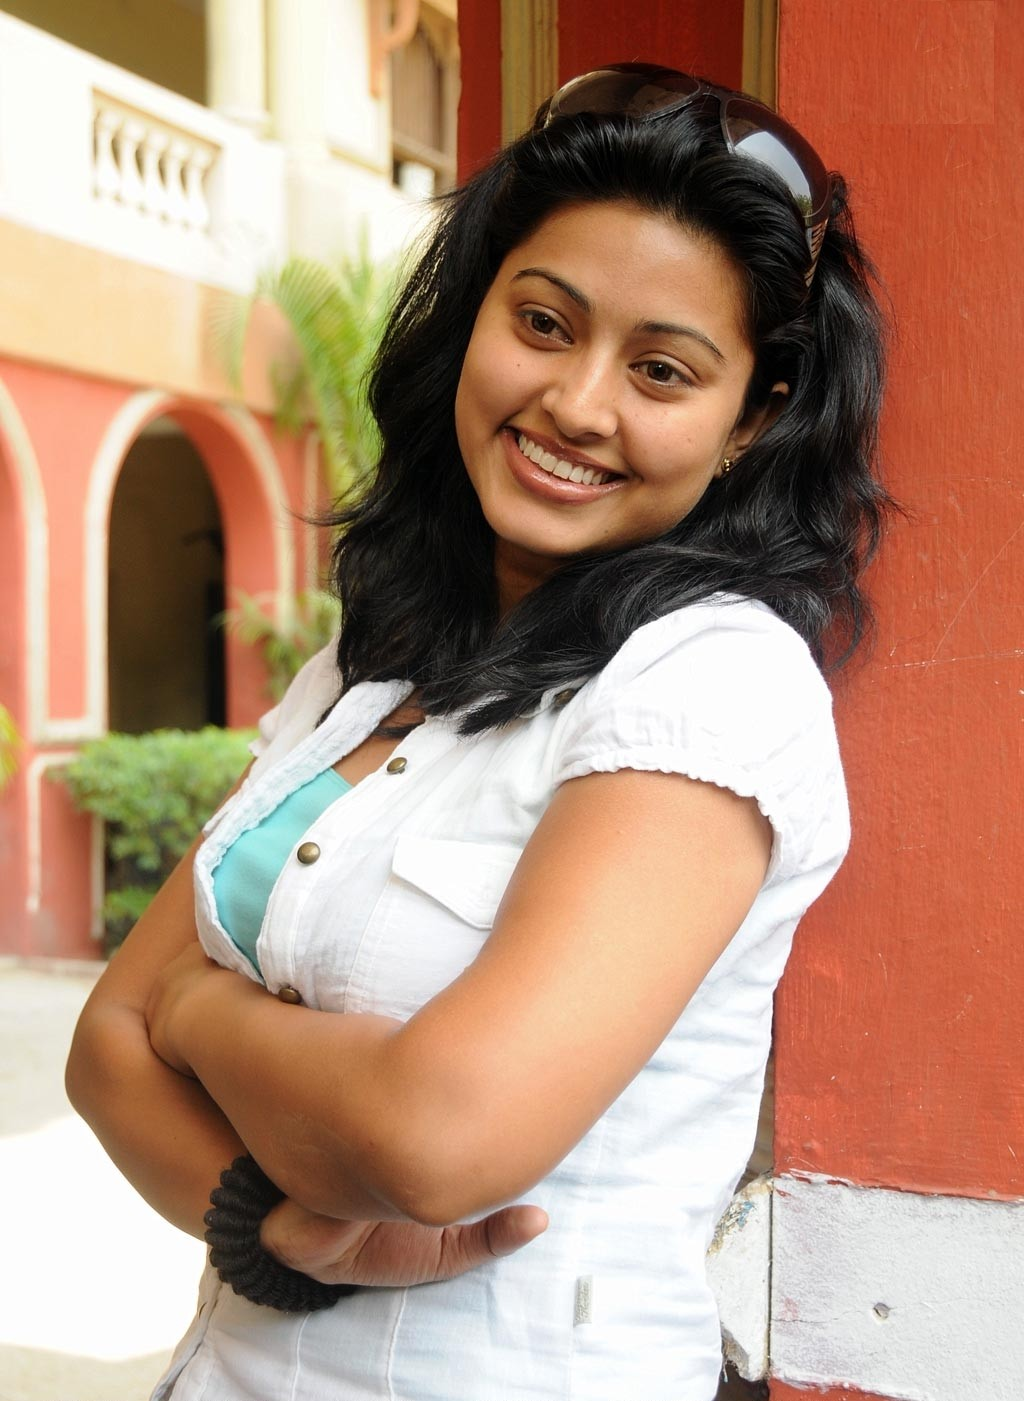 Malayalam Posters Sneha In Tight Jeans And Shirt- Looking